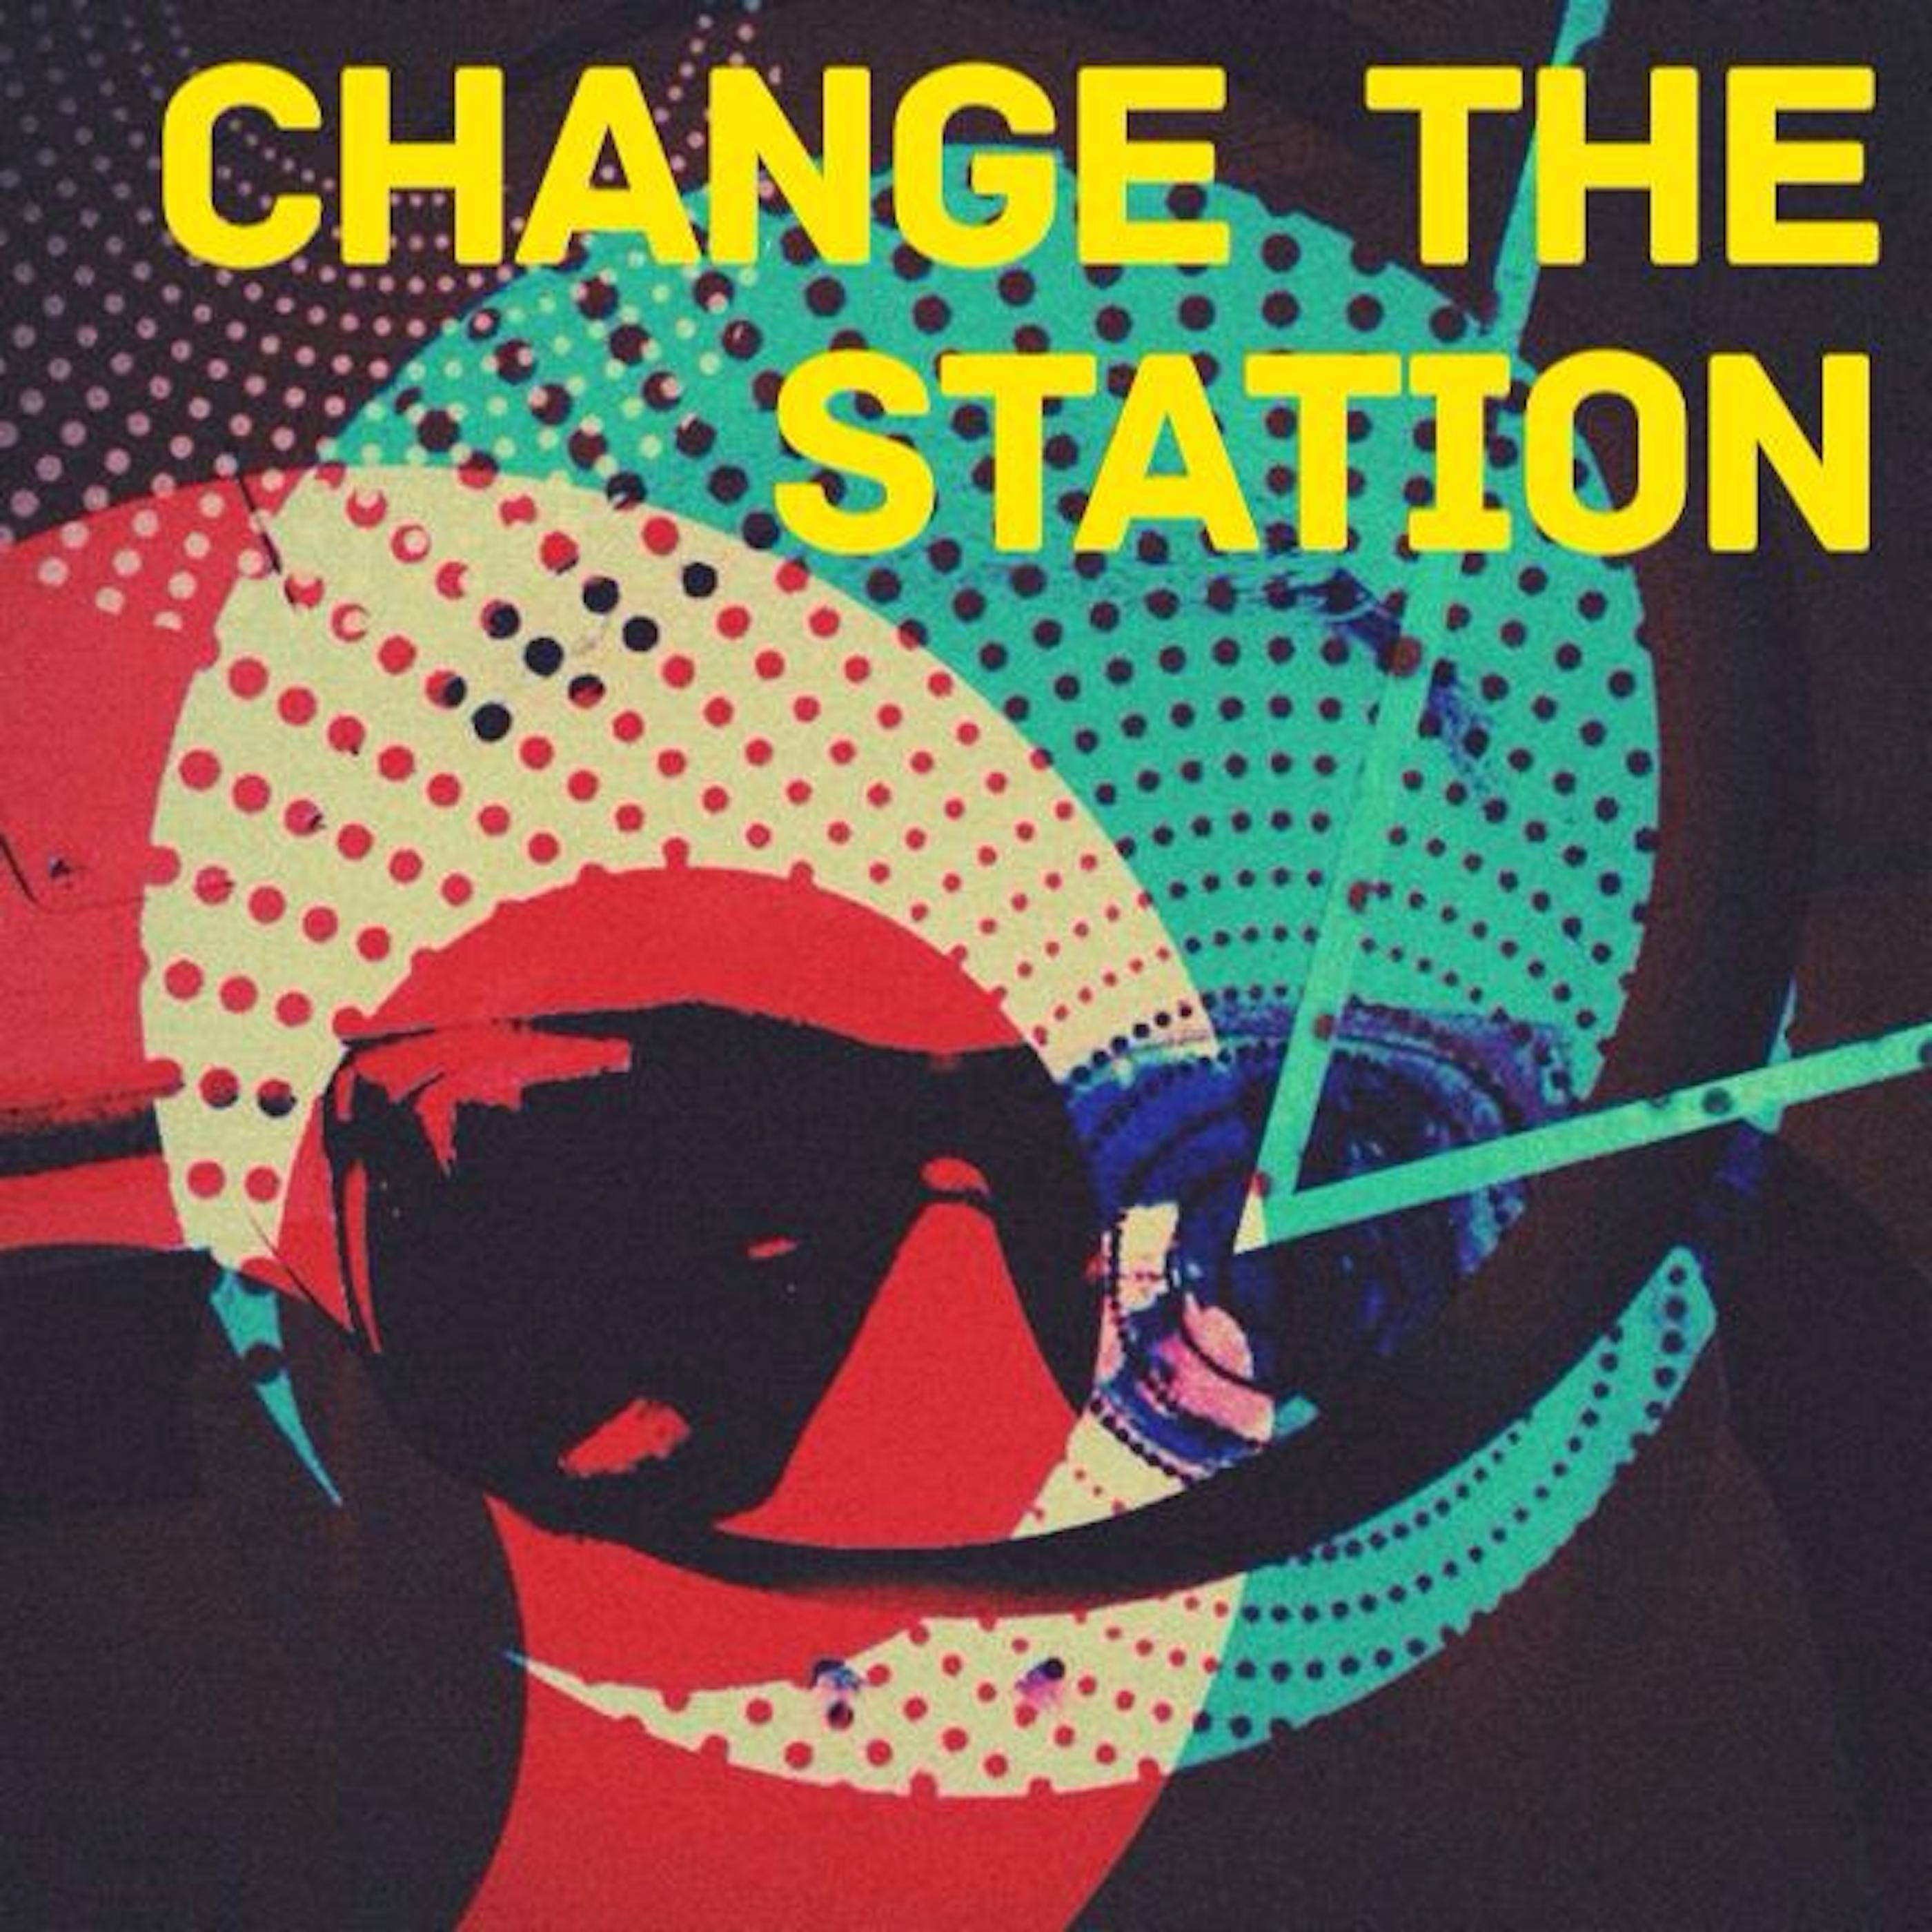 Change the Station